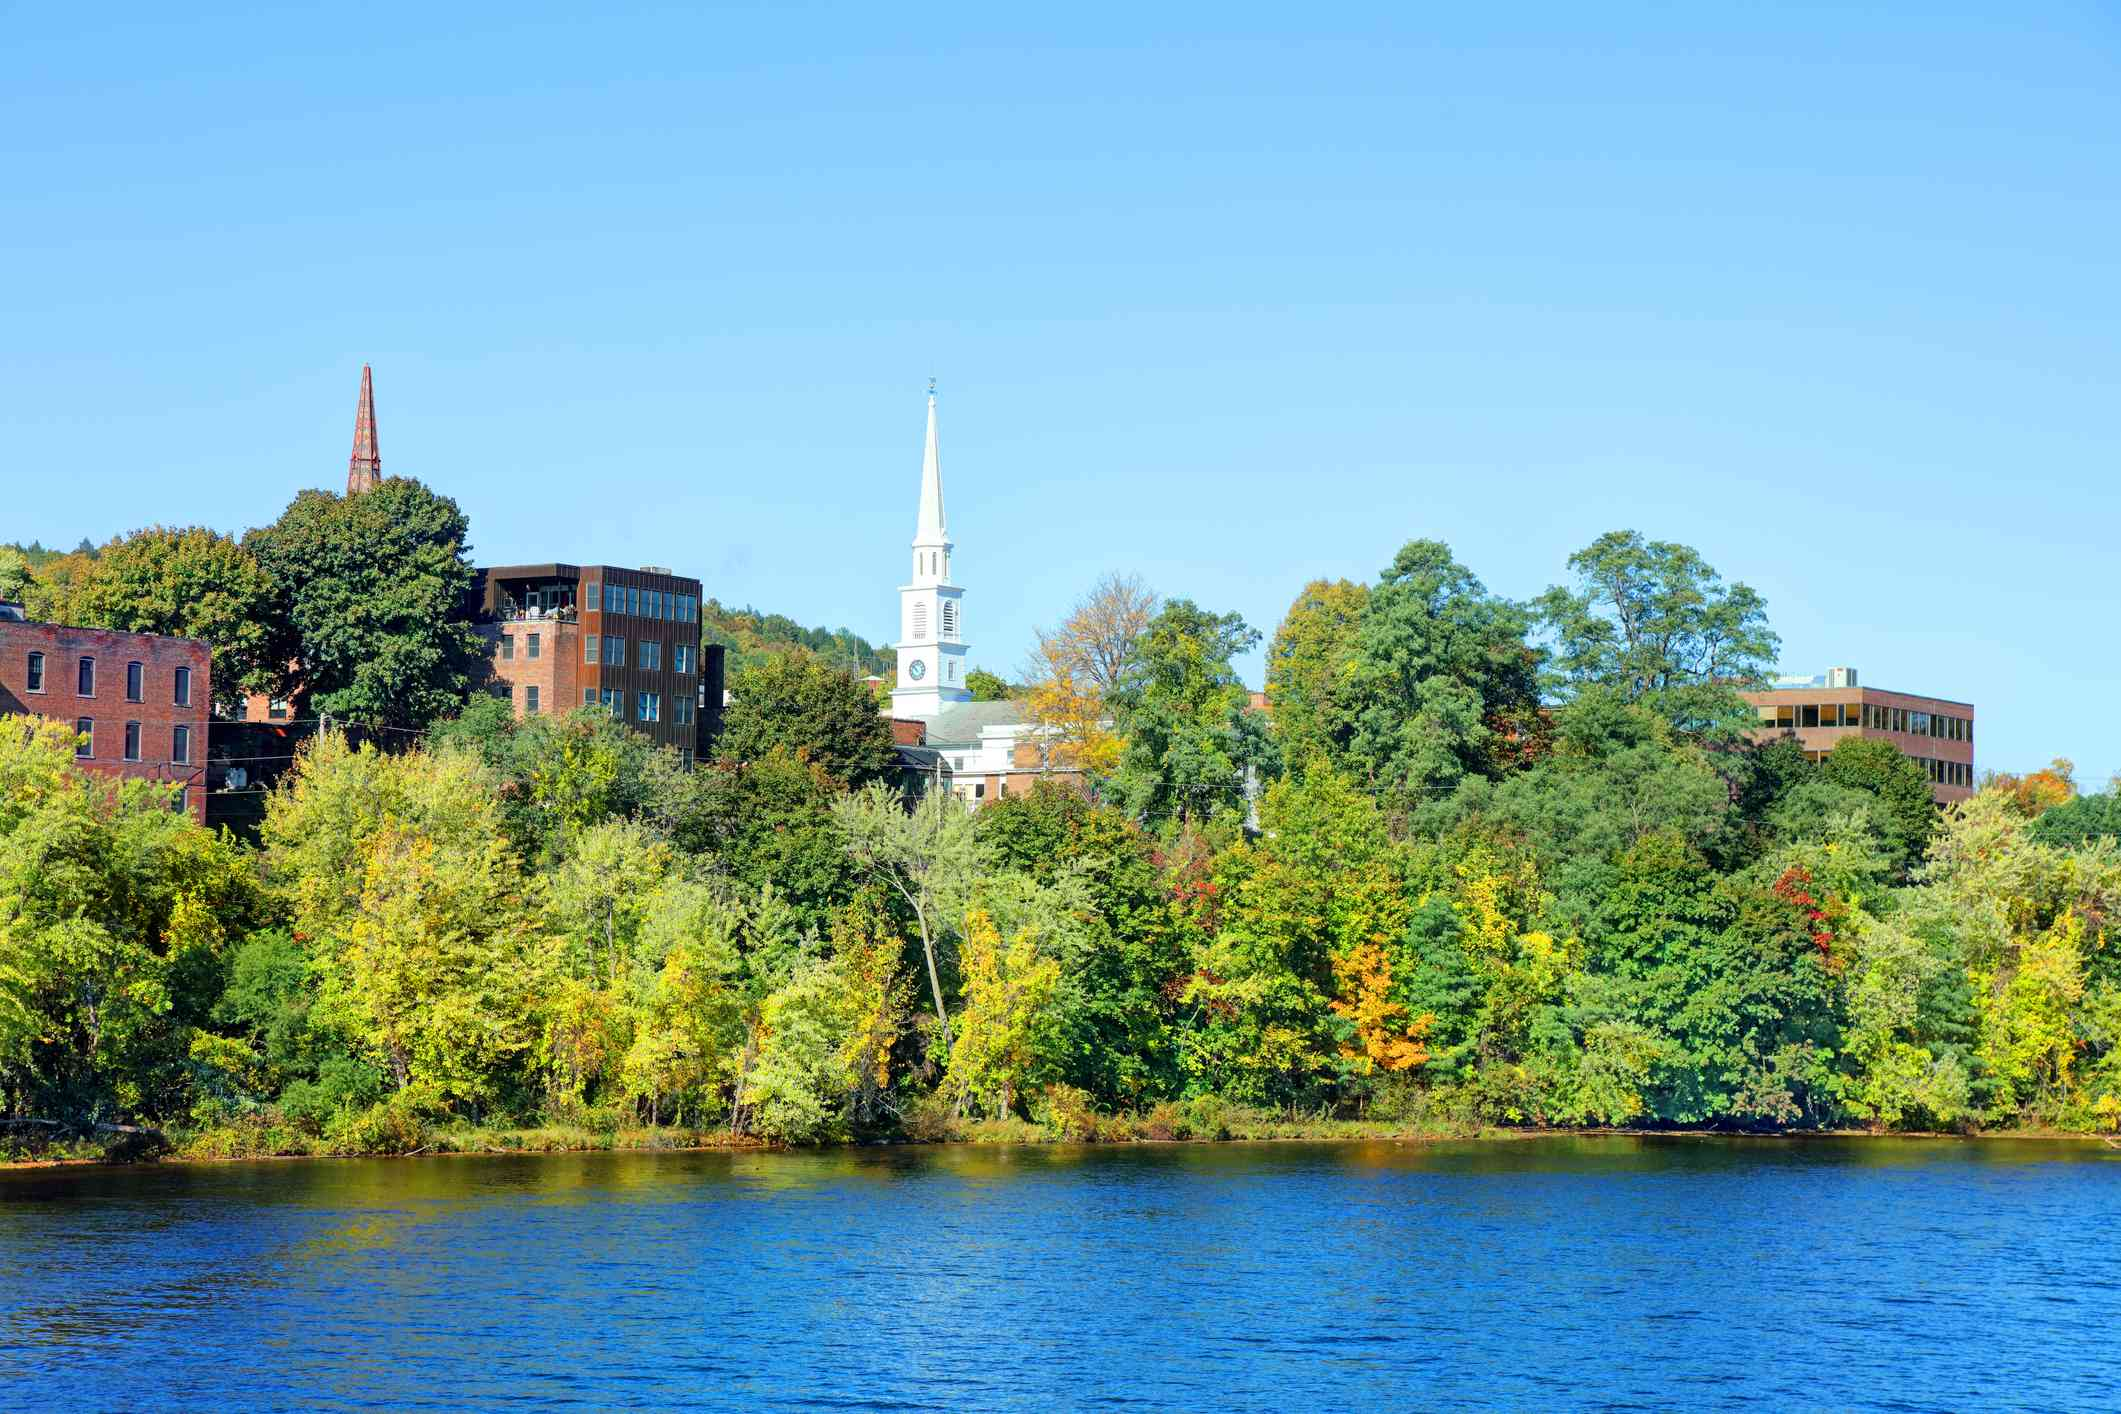 town of Brattleboro, Vermont partially obscured by trees on the banks of the connecticut river